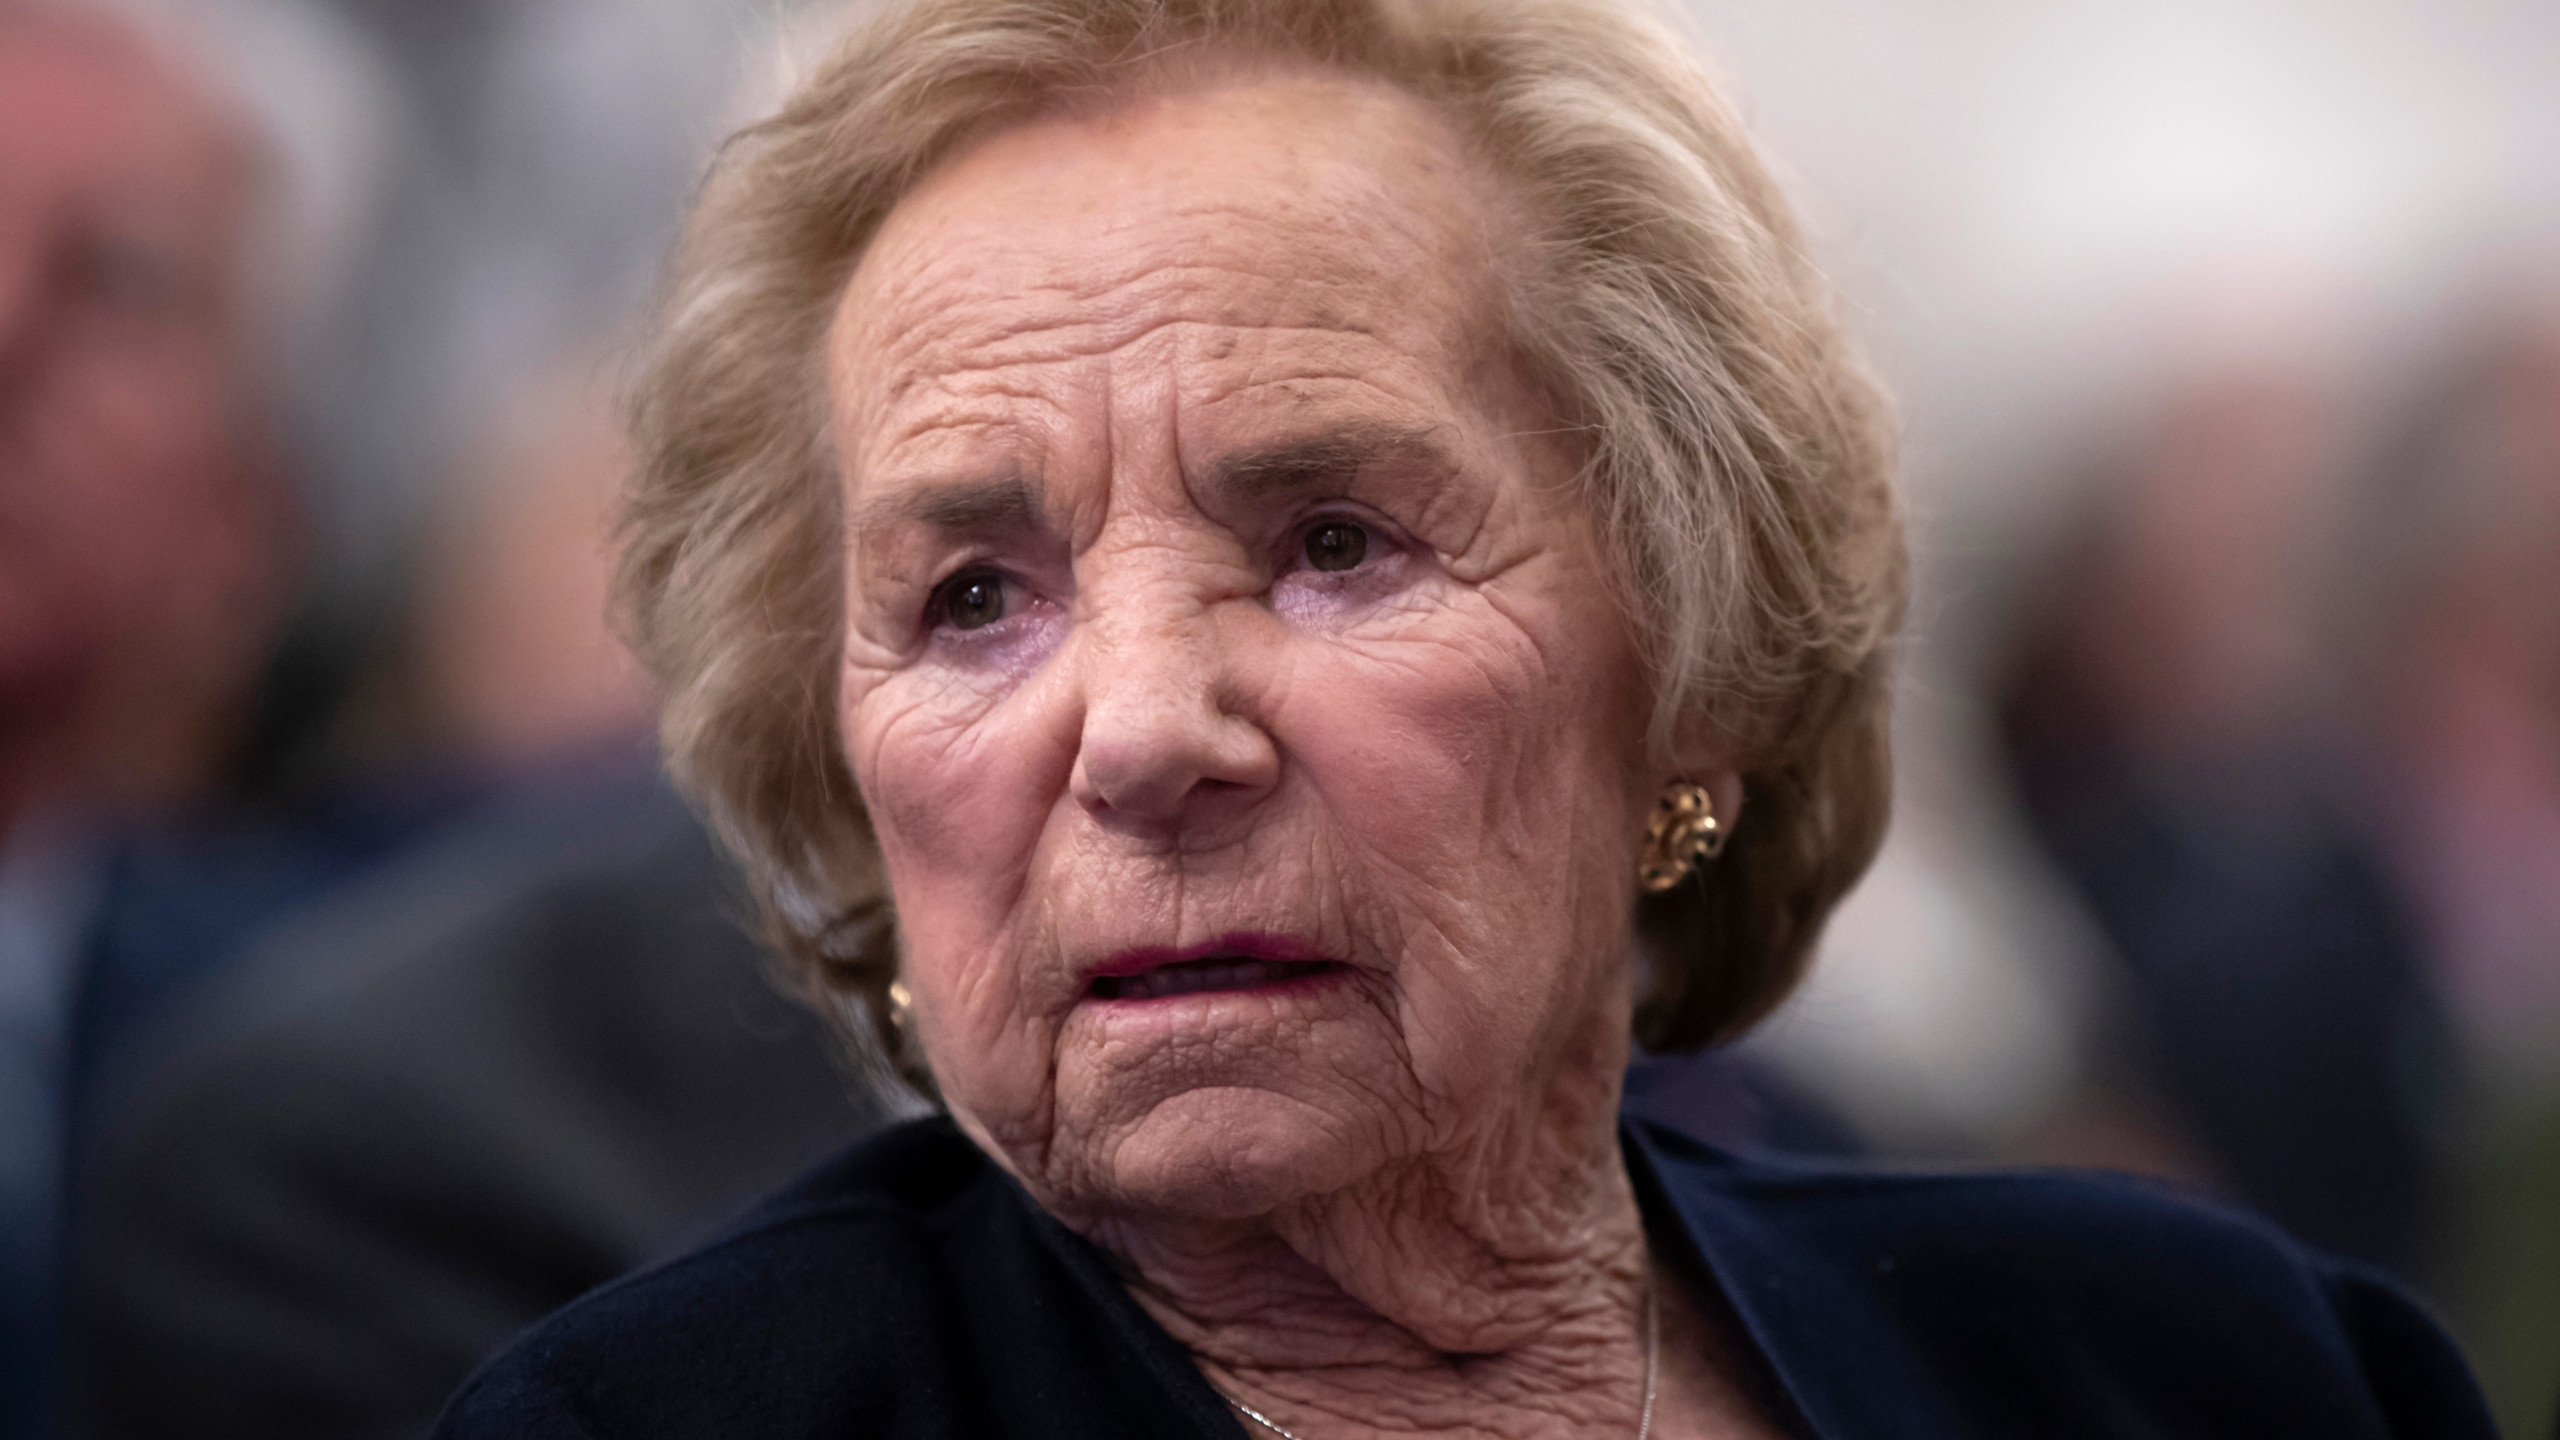 In this June 5, 2018 file photograph, Ethel Kennedy, widow of Senator Robert F. Kennedy who was assassinated during his 1968 presidential campaign, watches a video about her late husband during the Robert F. Kennedy Human Rights awards ceremony on Capitol Hill. (J. Scott Applewhite/Associated Press)